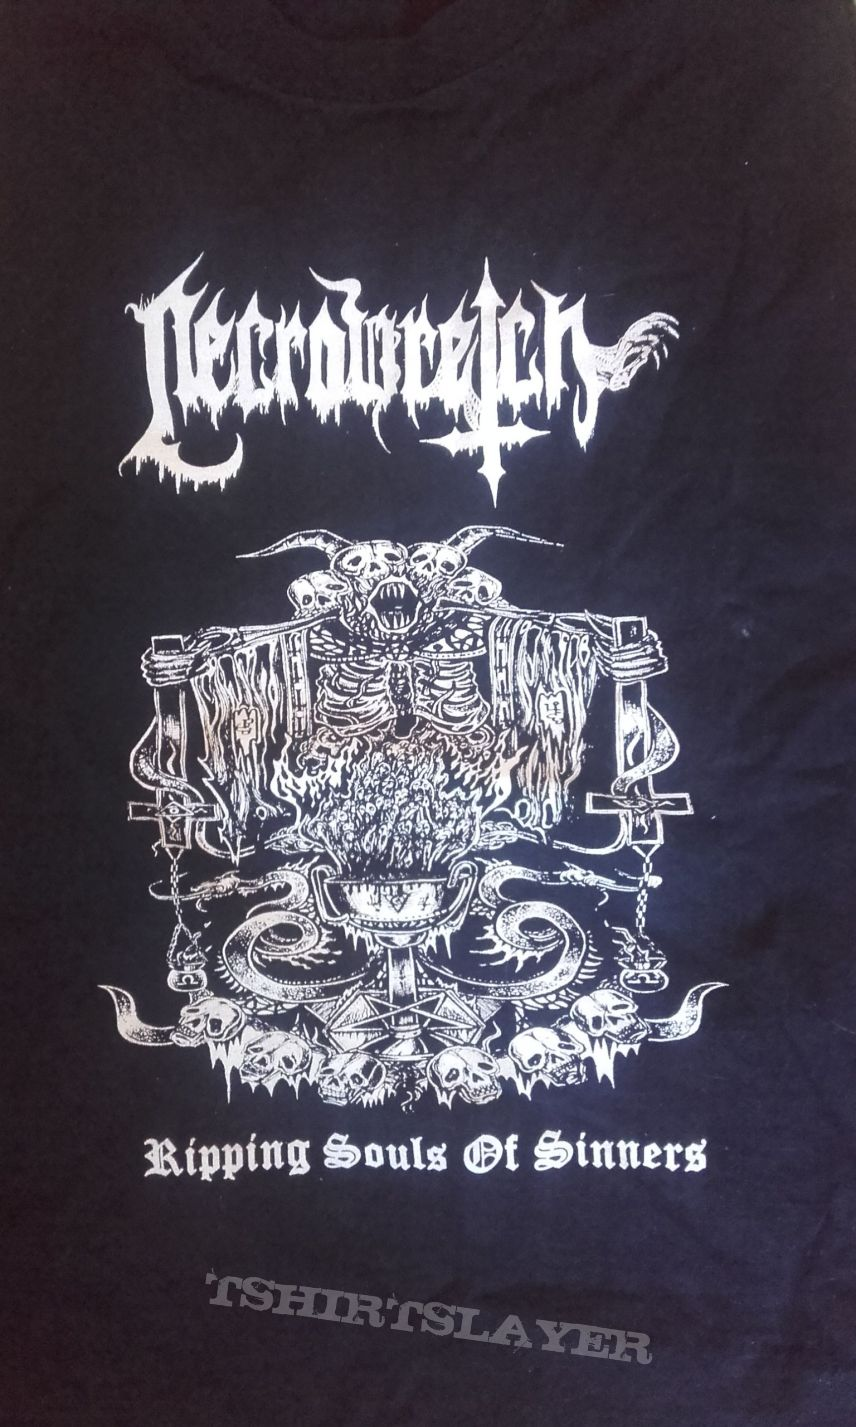 Sleeve cutted Necrowretch